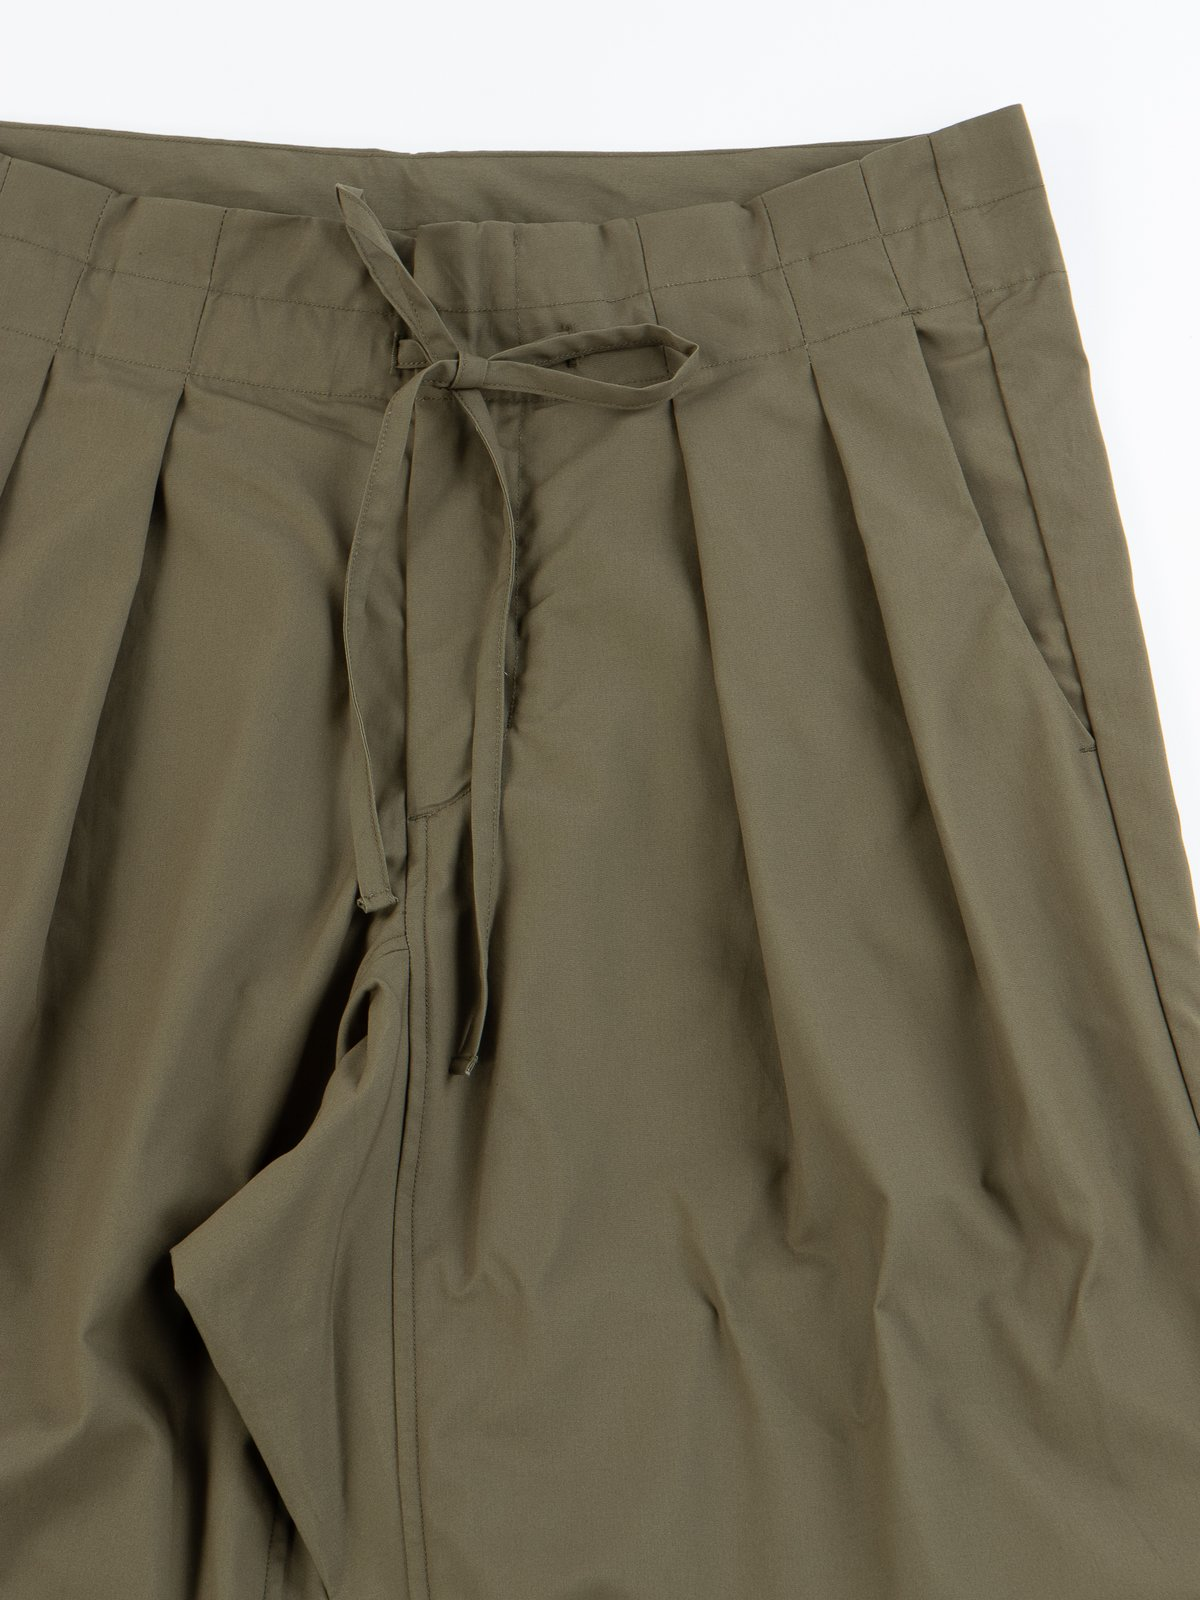 Olive Oxford Vancloth Drop Crotch Pant - Image 3